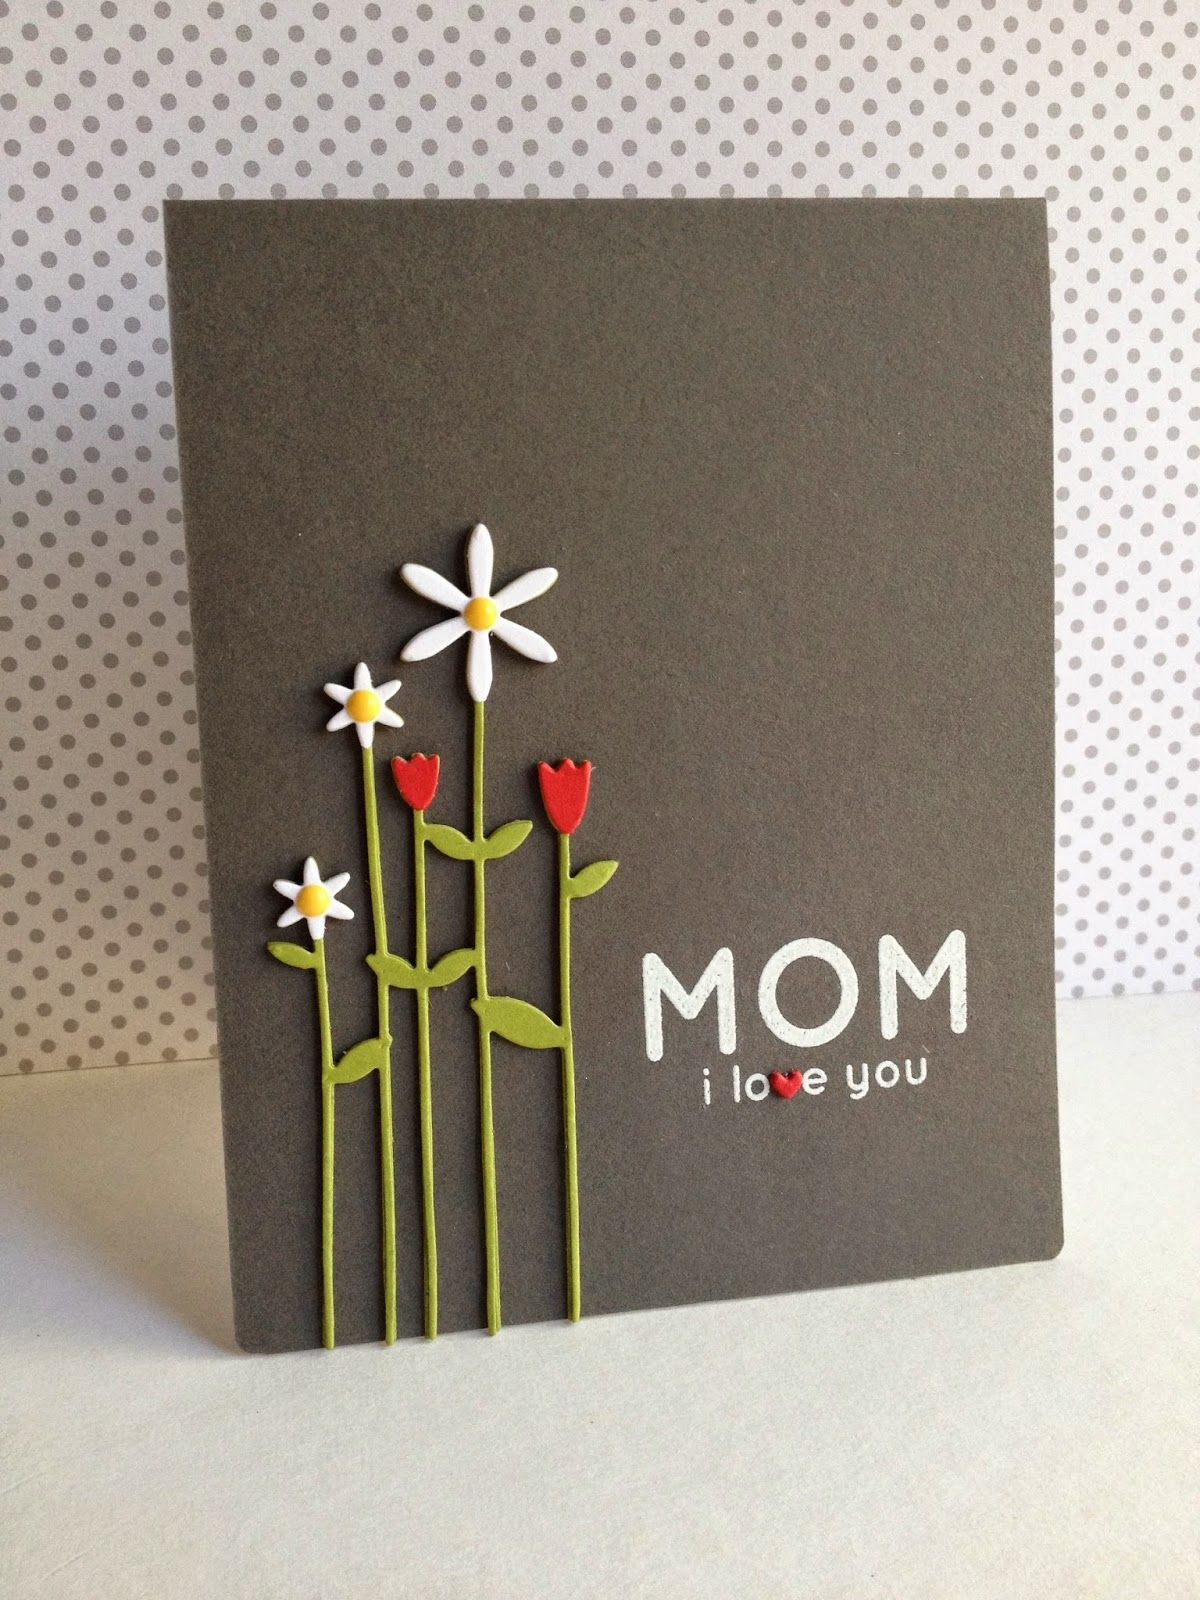 Tall Flowers For Mom Simon Says Mothers Day Cards Cards